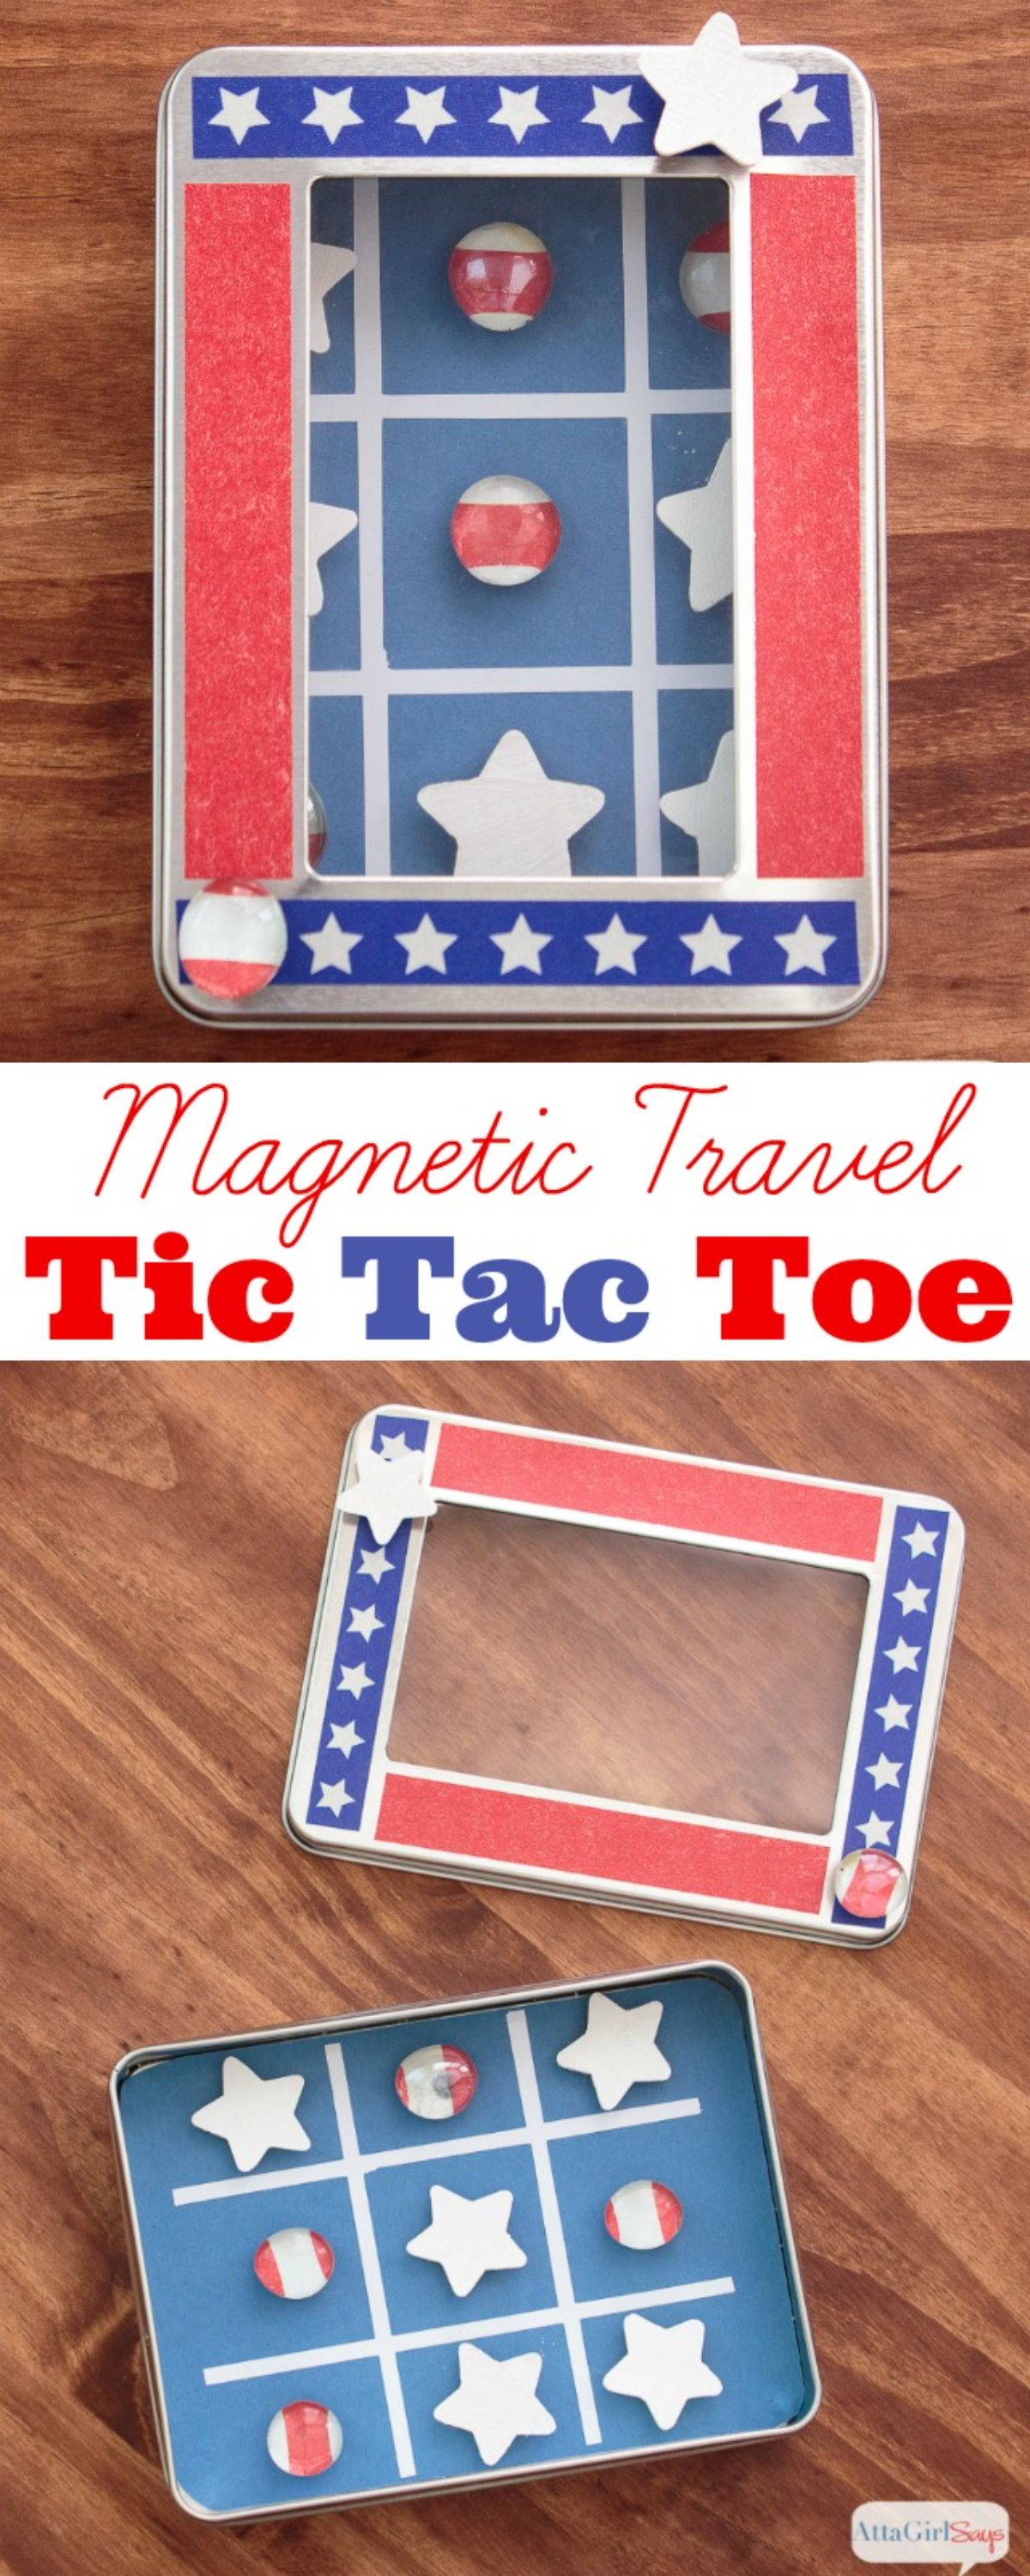 2 images of a tin turned into a magnetic tic tac toe game painted like the american flag